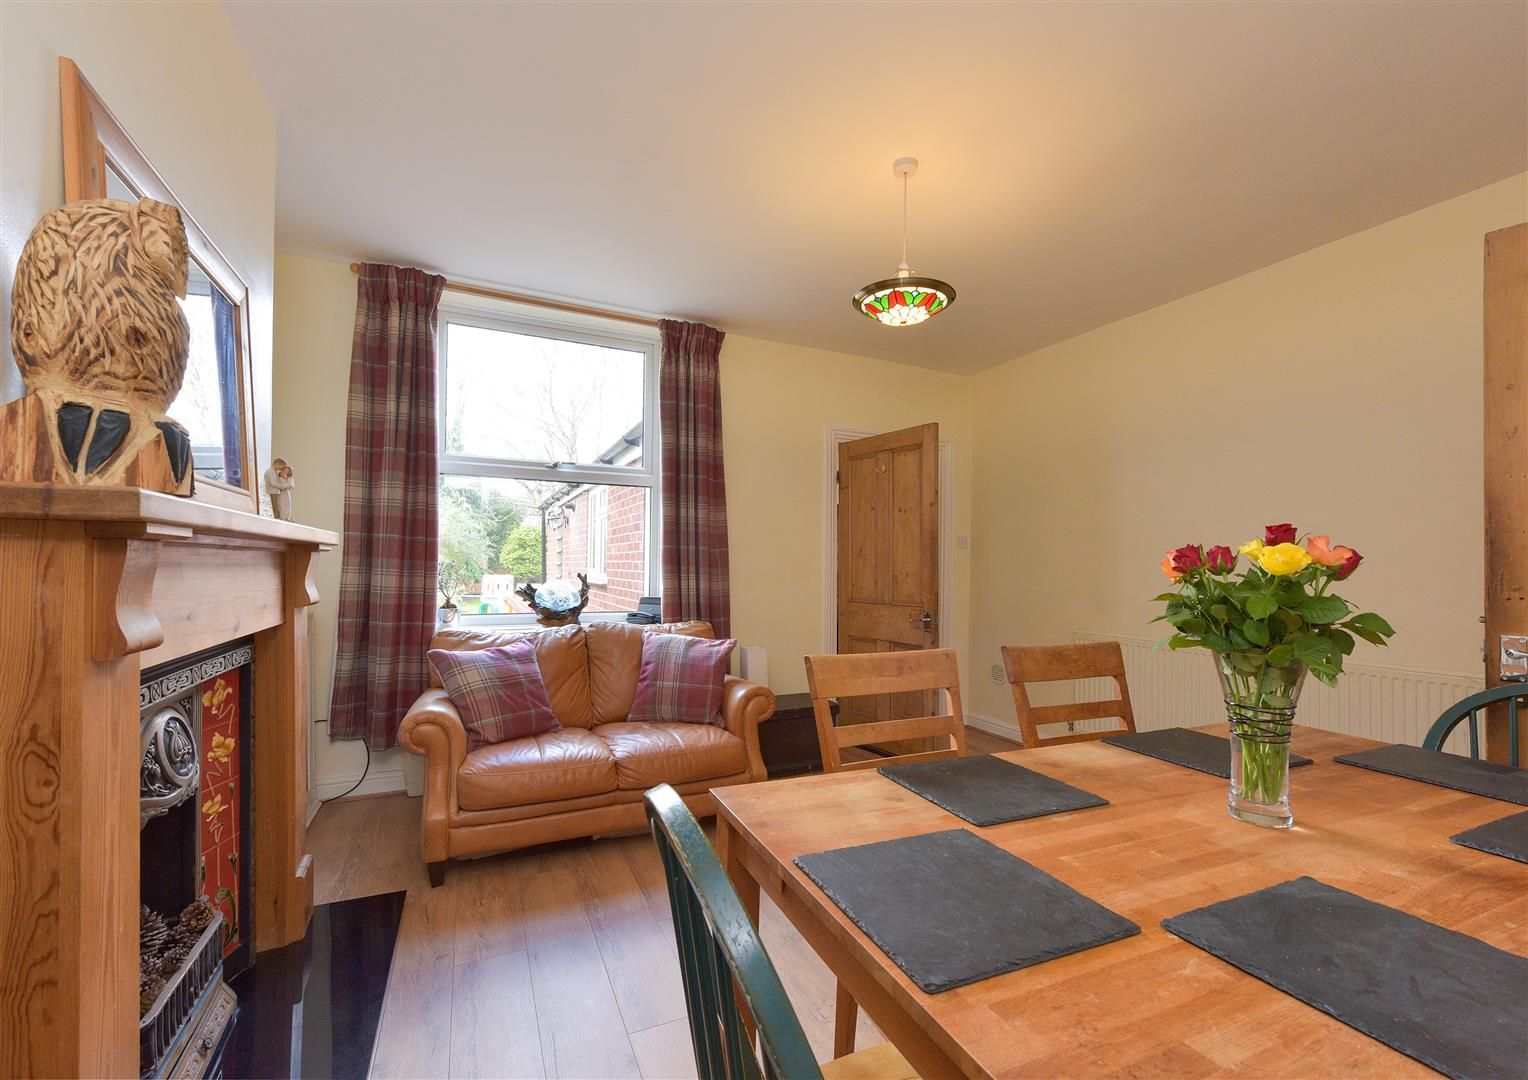 3 bed end-of-terrace for sale 7